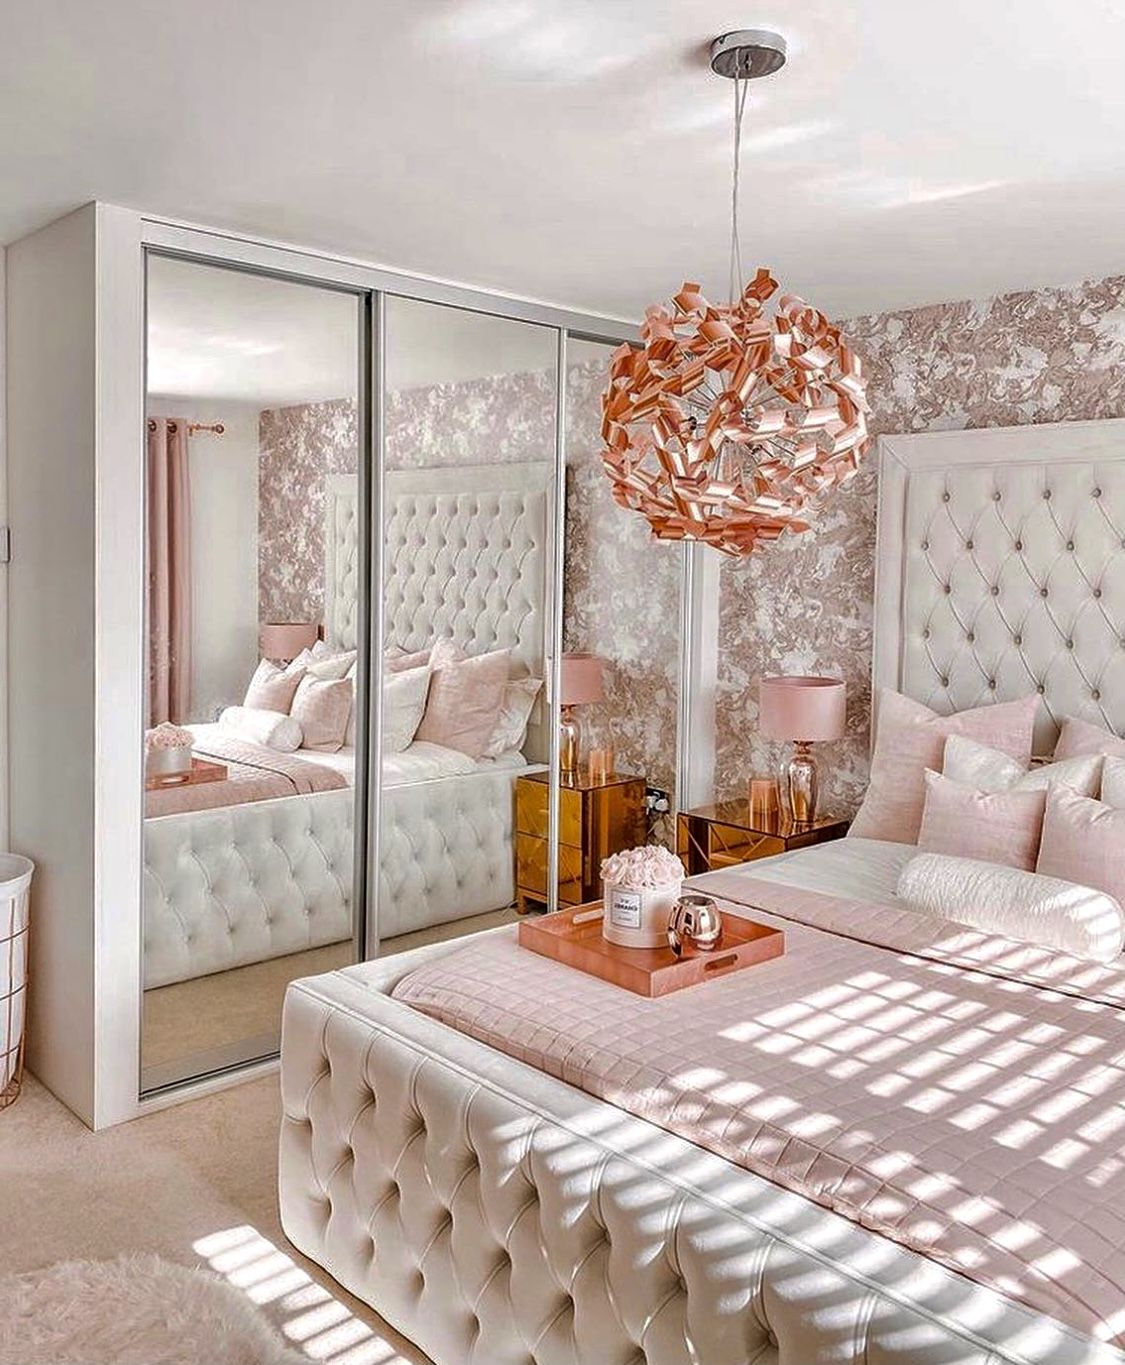 Cozy White And Baby Pink Glam Bedroom Decor With White Velvet Tufted Bed And Pink Carpet Glam Bedroom Decor Room Inspiration Bedroom Luxurious Bedrooms Luxury pink bedroom ideas